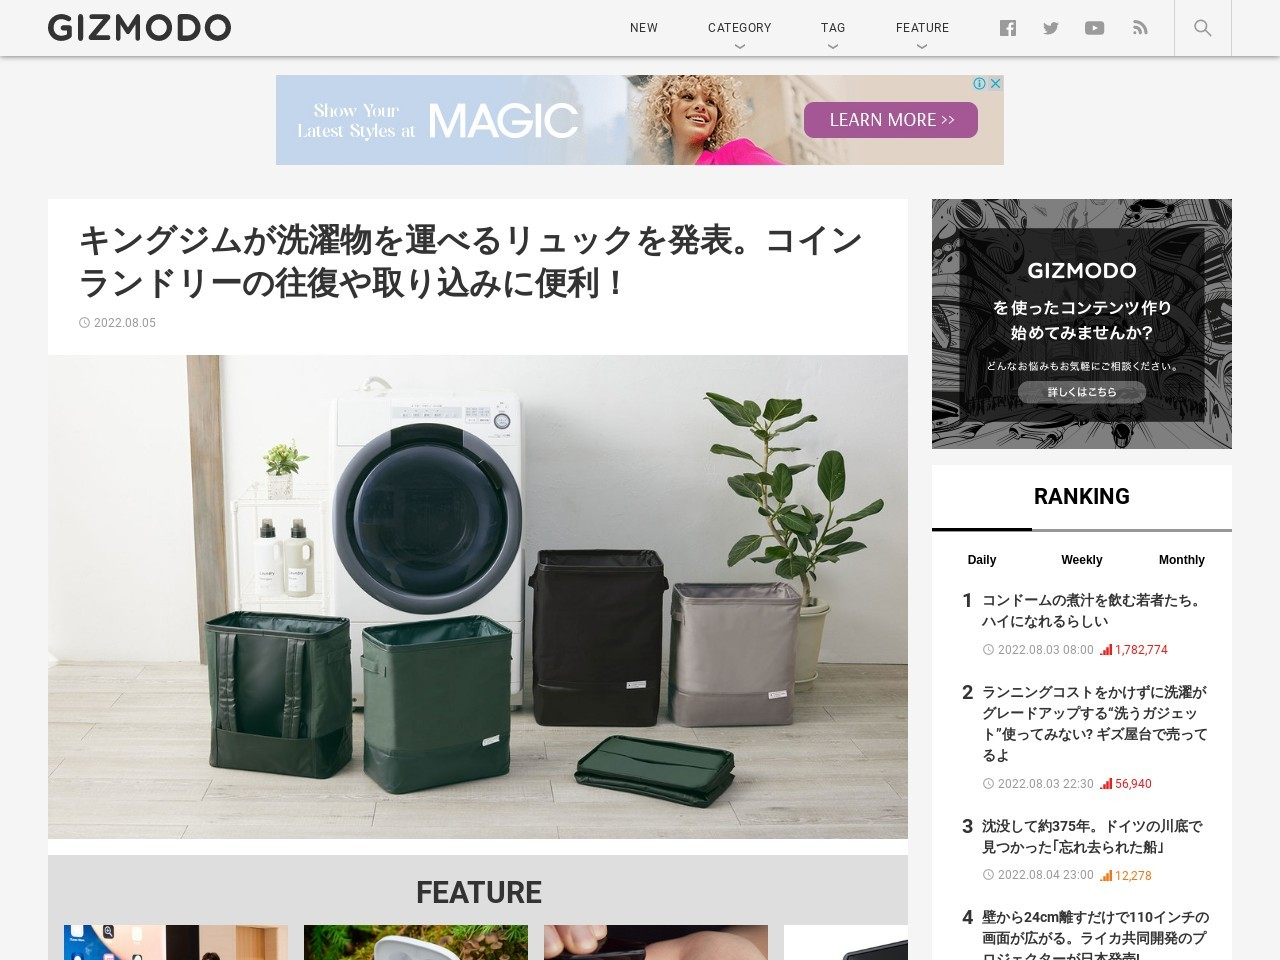 http://www.gizmodo.jp/2016/01/iphonecrisis.html